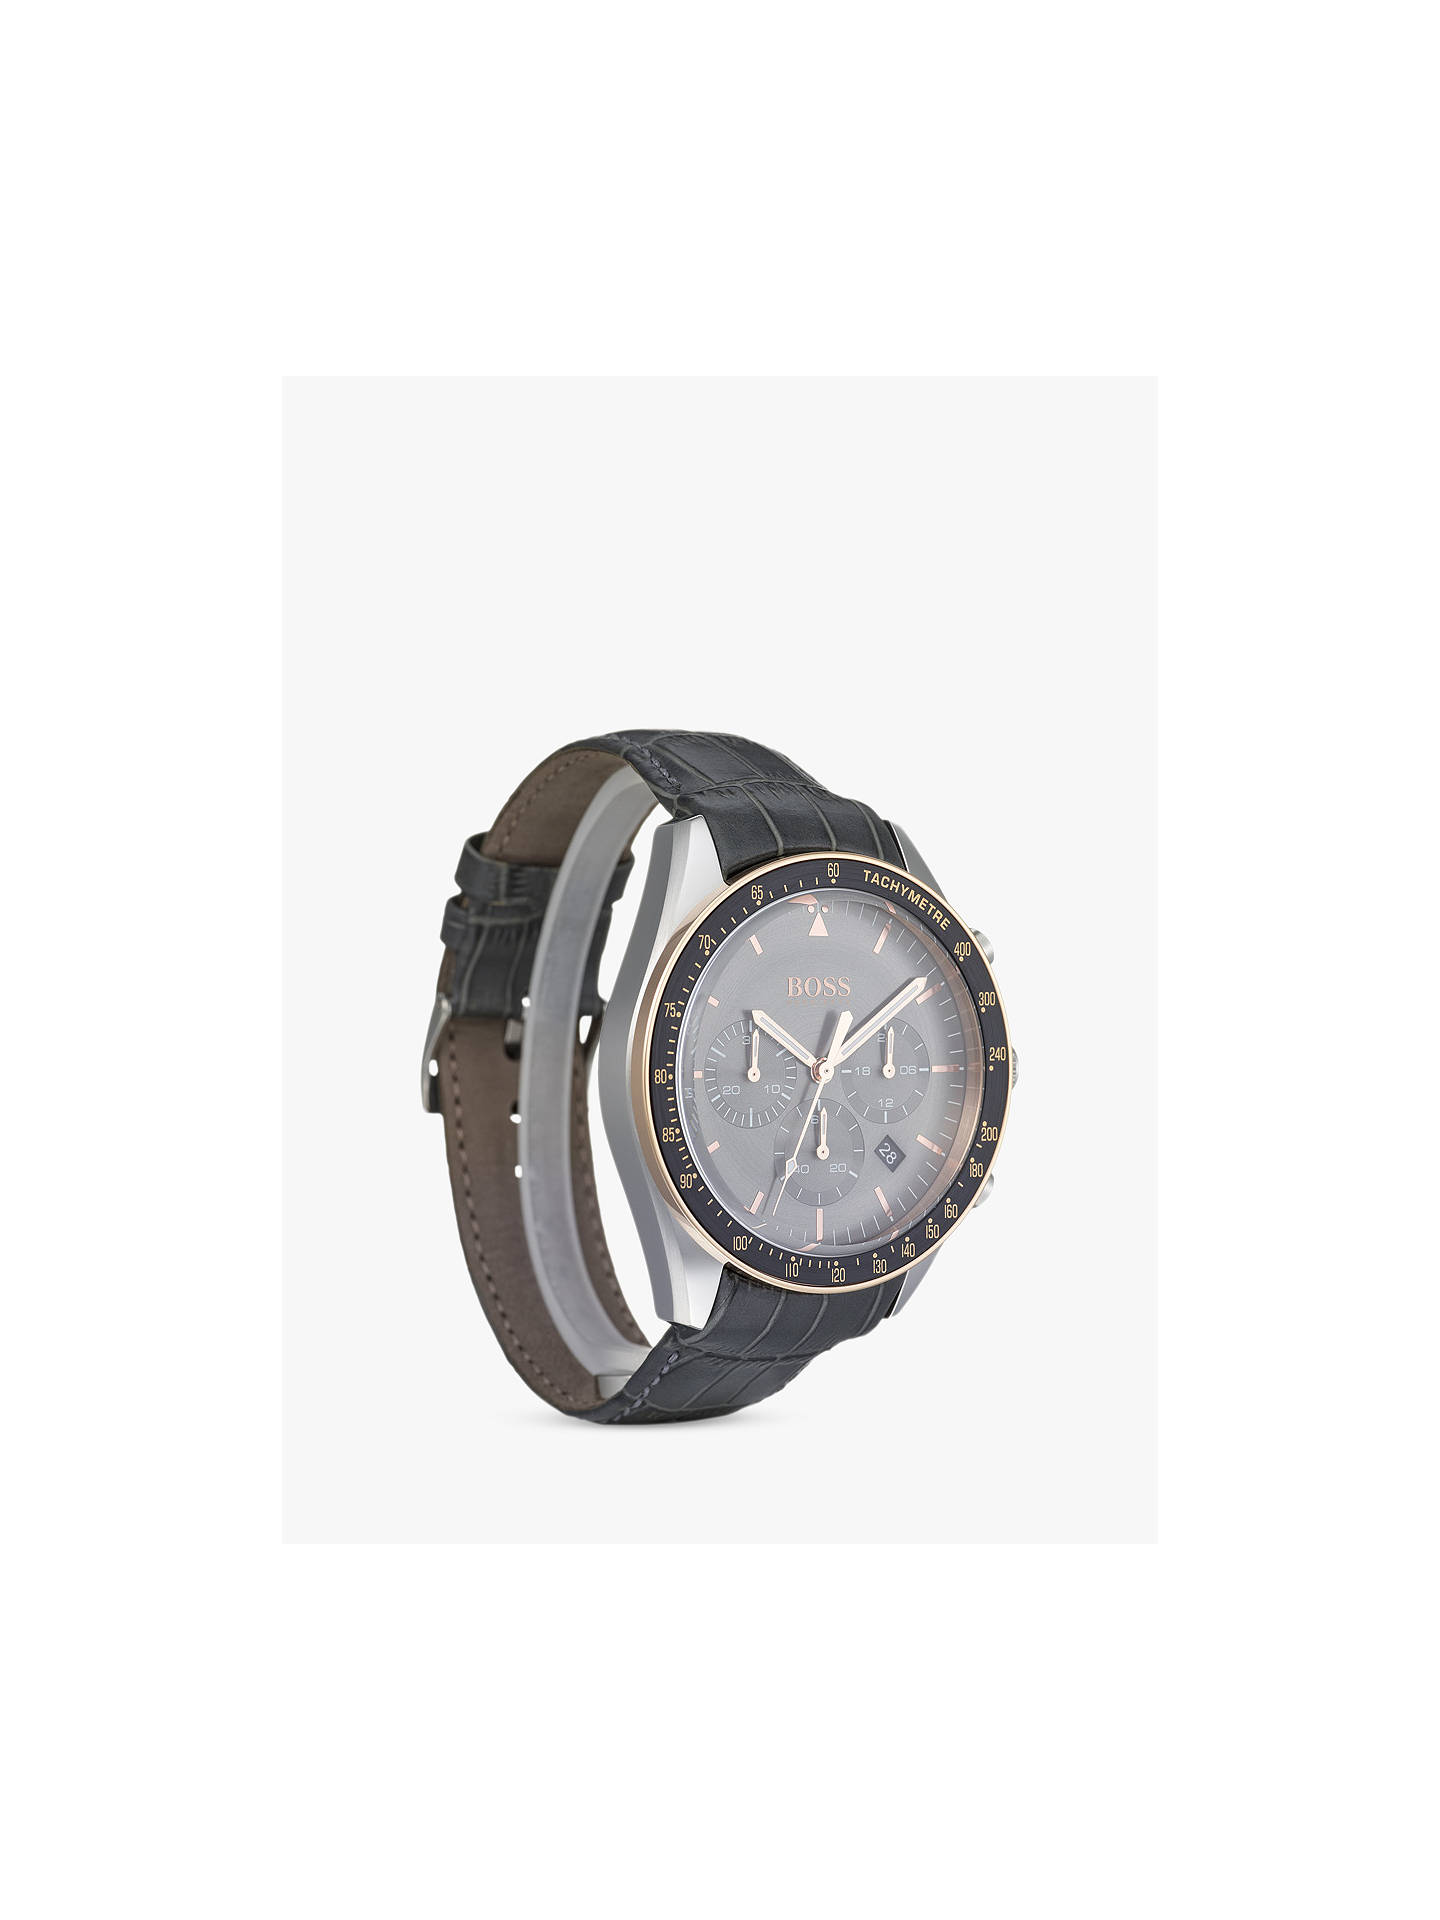 63a2590bb8d Buy HUGO BOSS 1513628 Men's Trophy Chronograph Leather Strap Watch, Grey  Online at johnlewis.